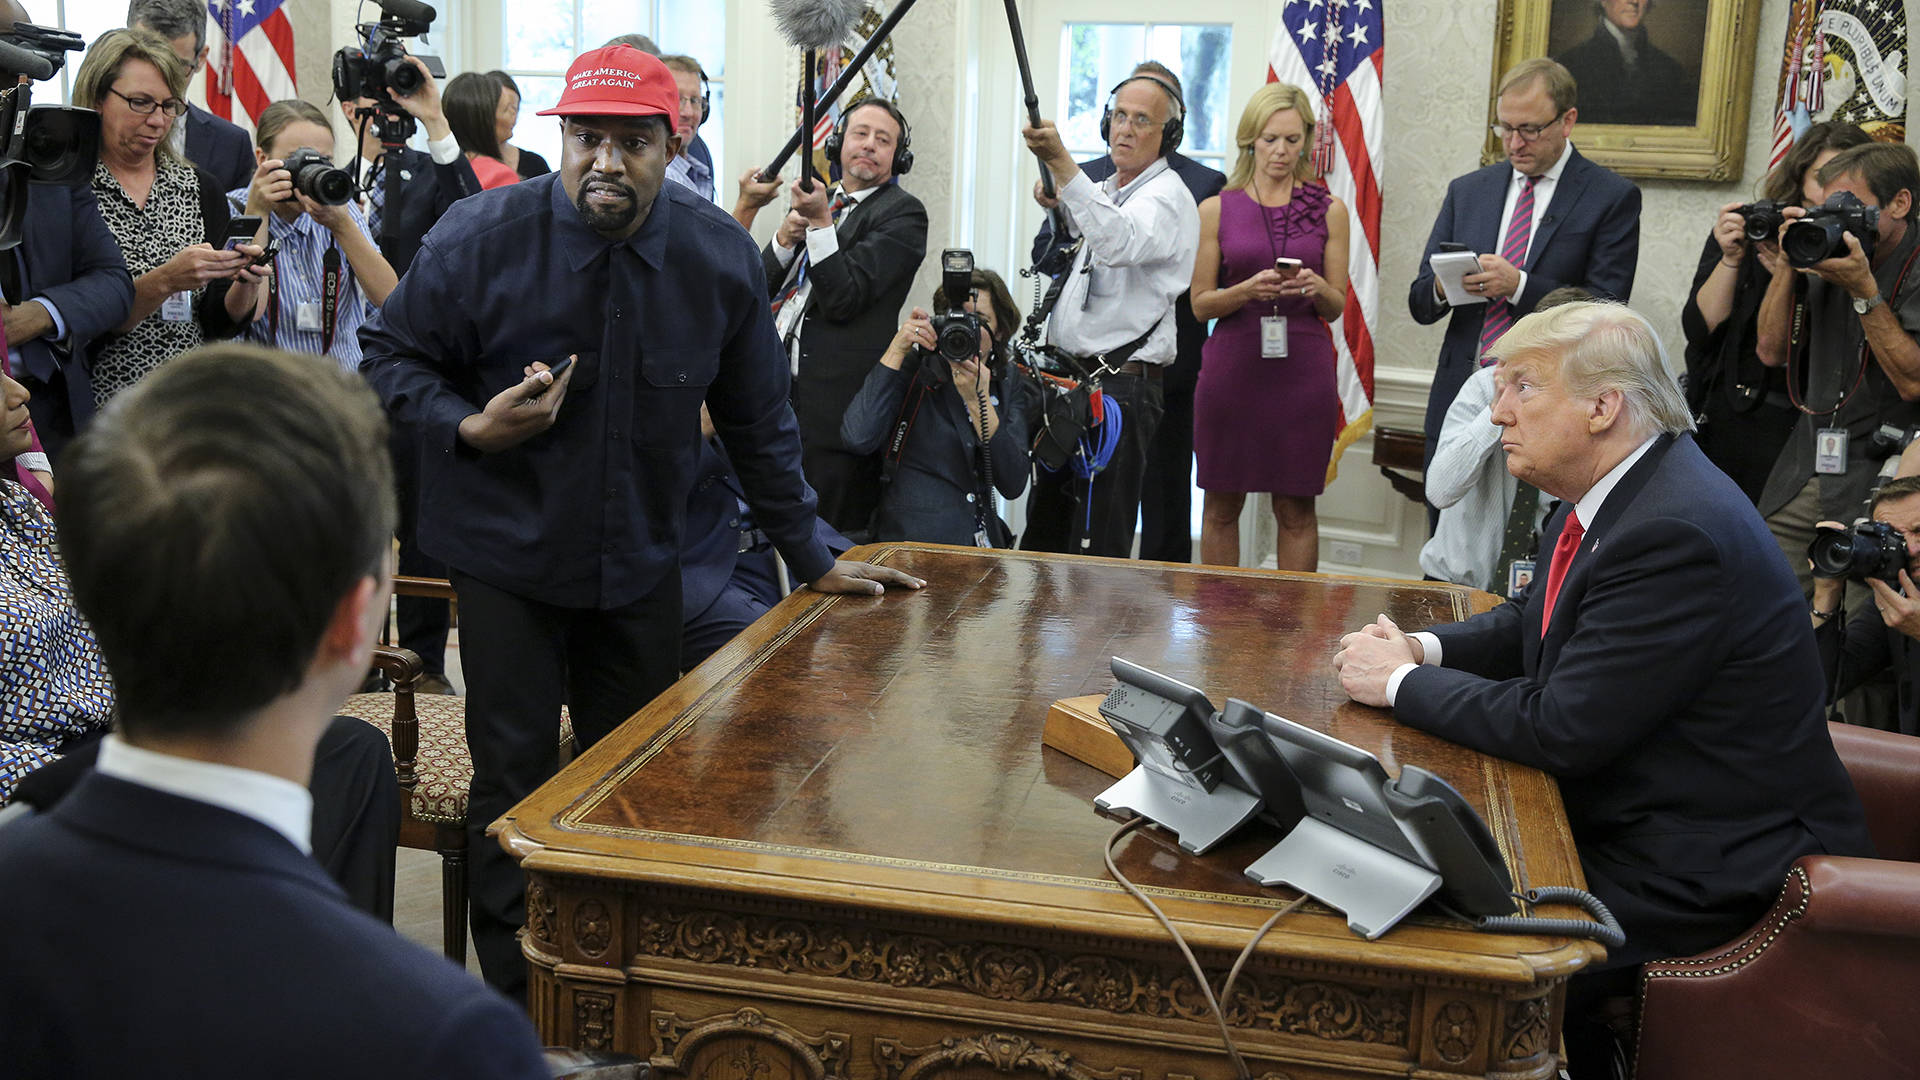 Kanye West stands up as he speaks during a meeting with Donald Trump in the Oval office of the White House on October 11, 2018 in Washington, DC.  Oliver Contreras - Pool/Getty Images